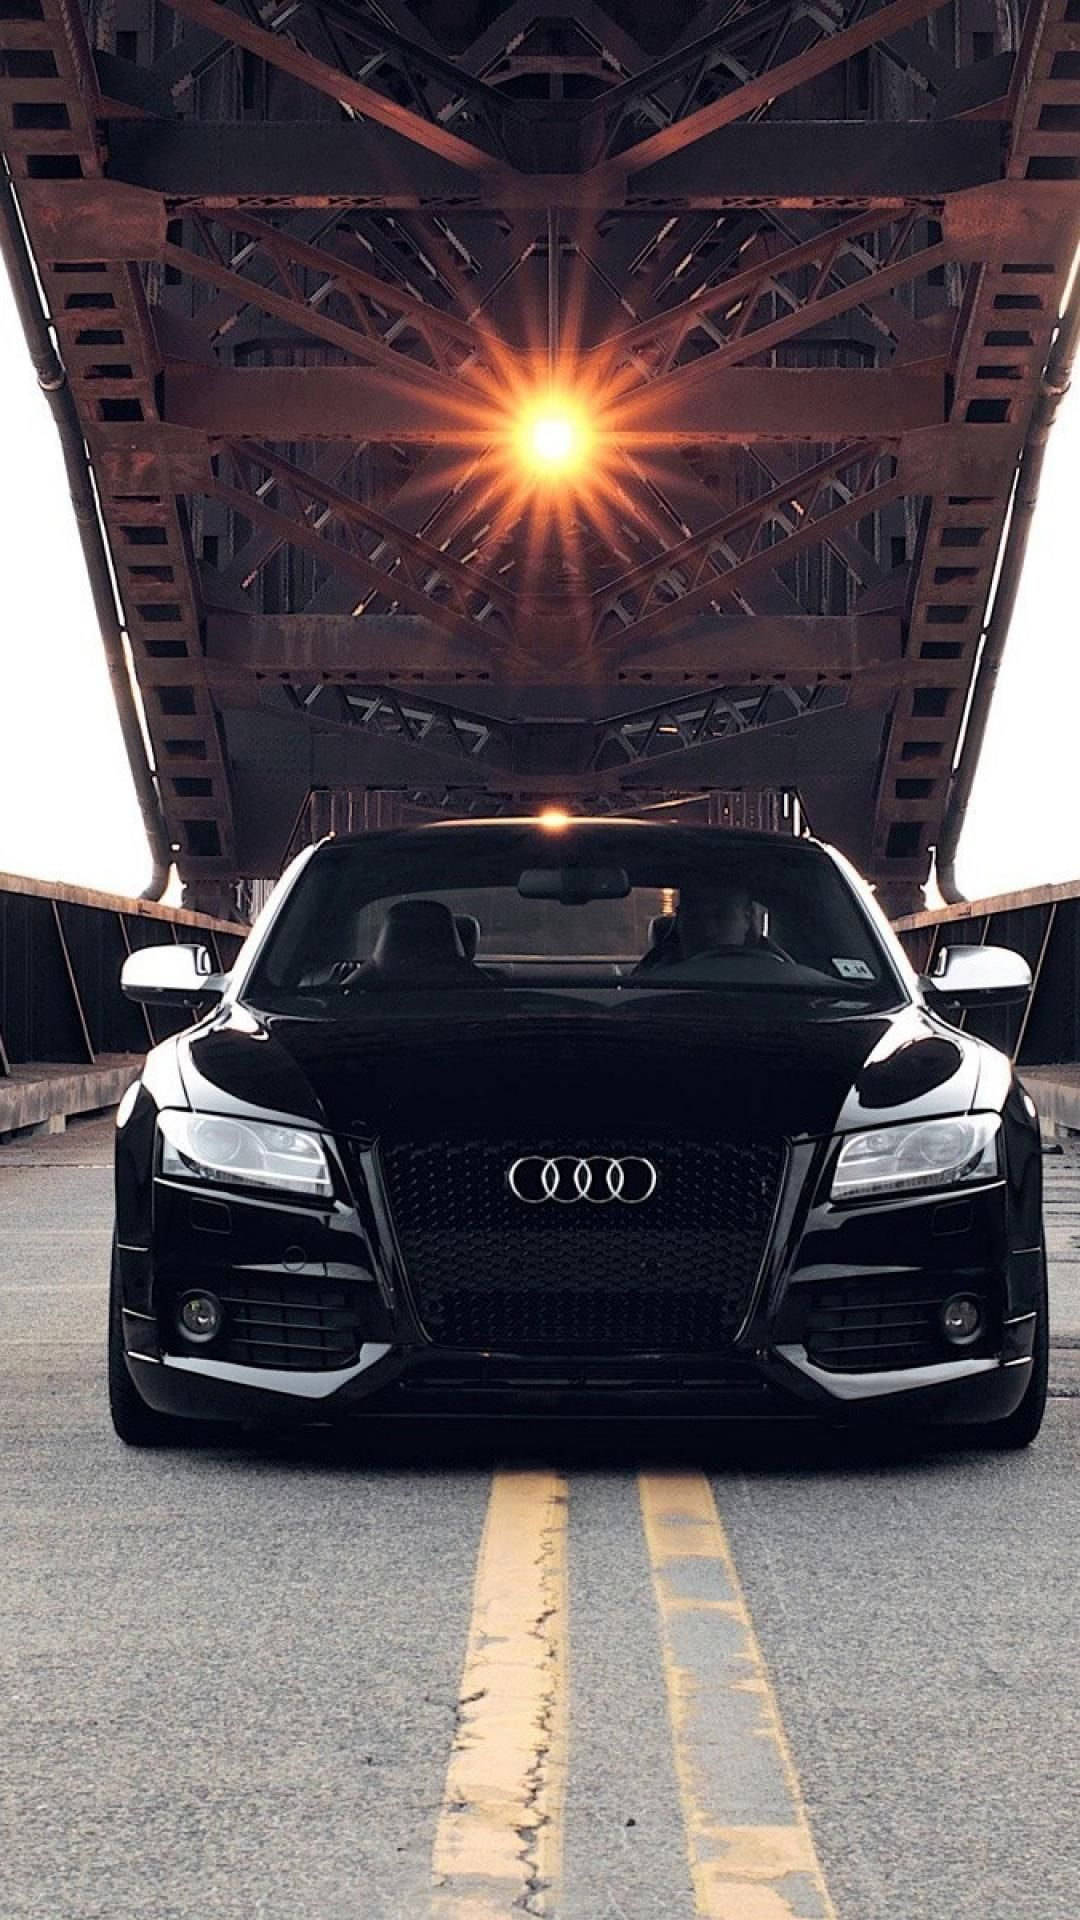 When I Finally Have My Career In The Fashion Industry This Would Be My  Dream Car To Drive Me To Work Every Day! Audiu0027s Are Perfection.